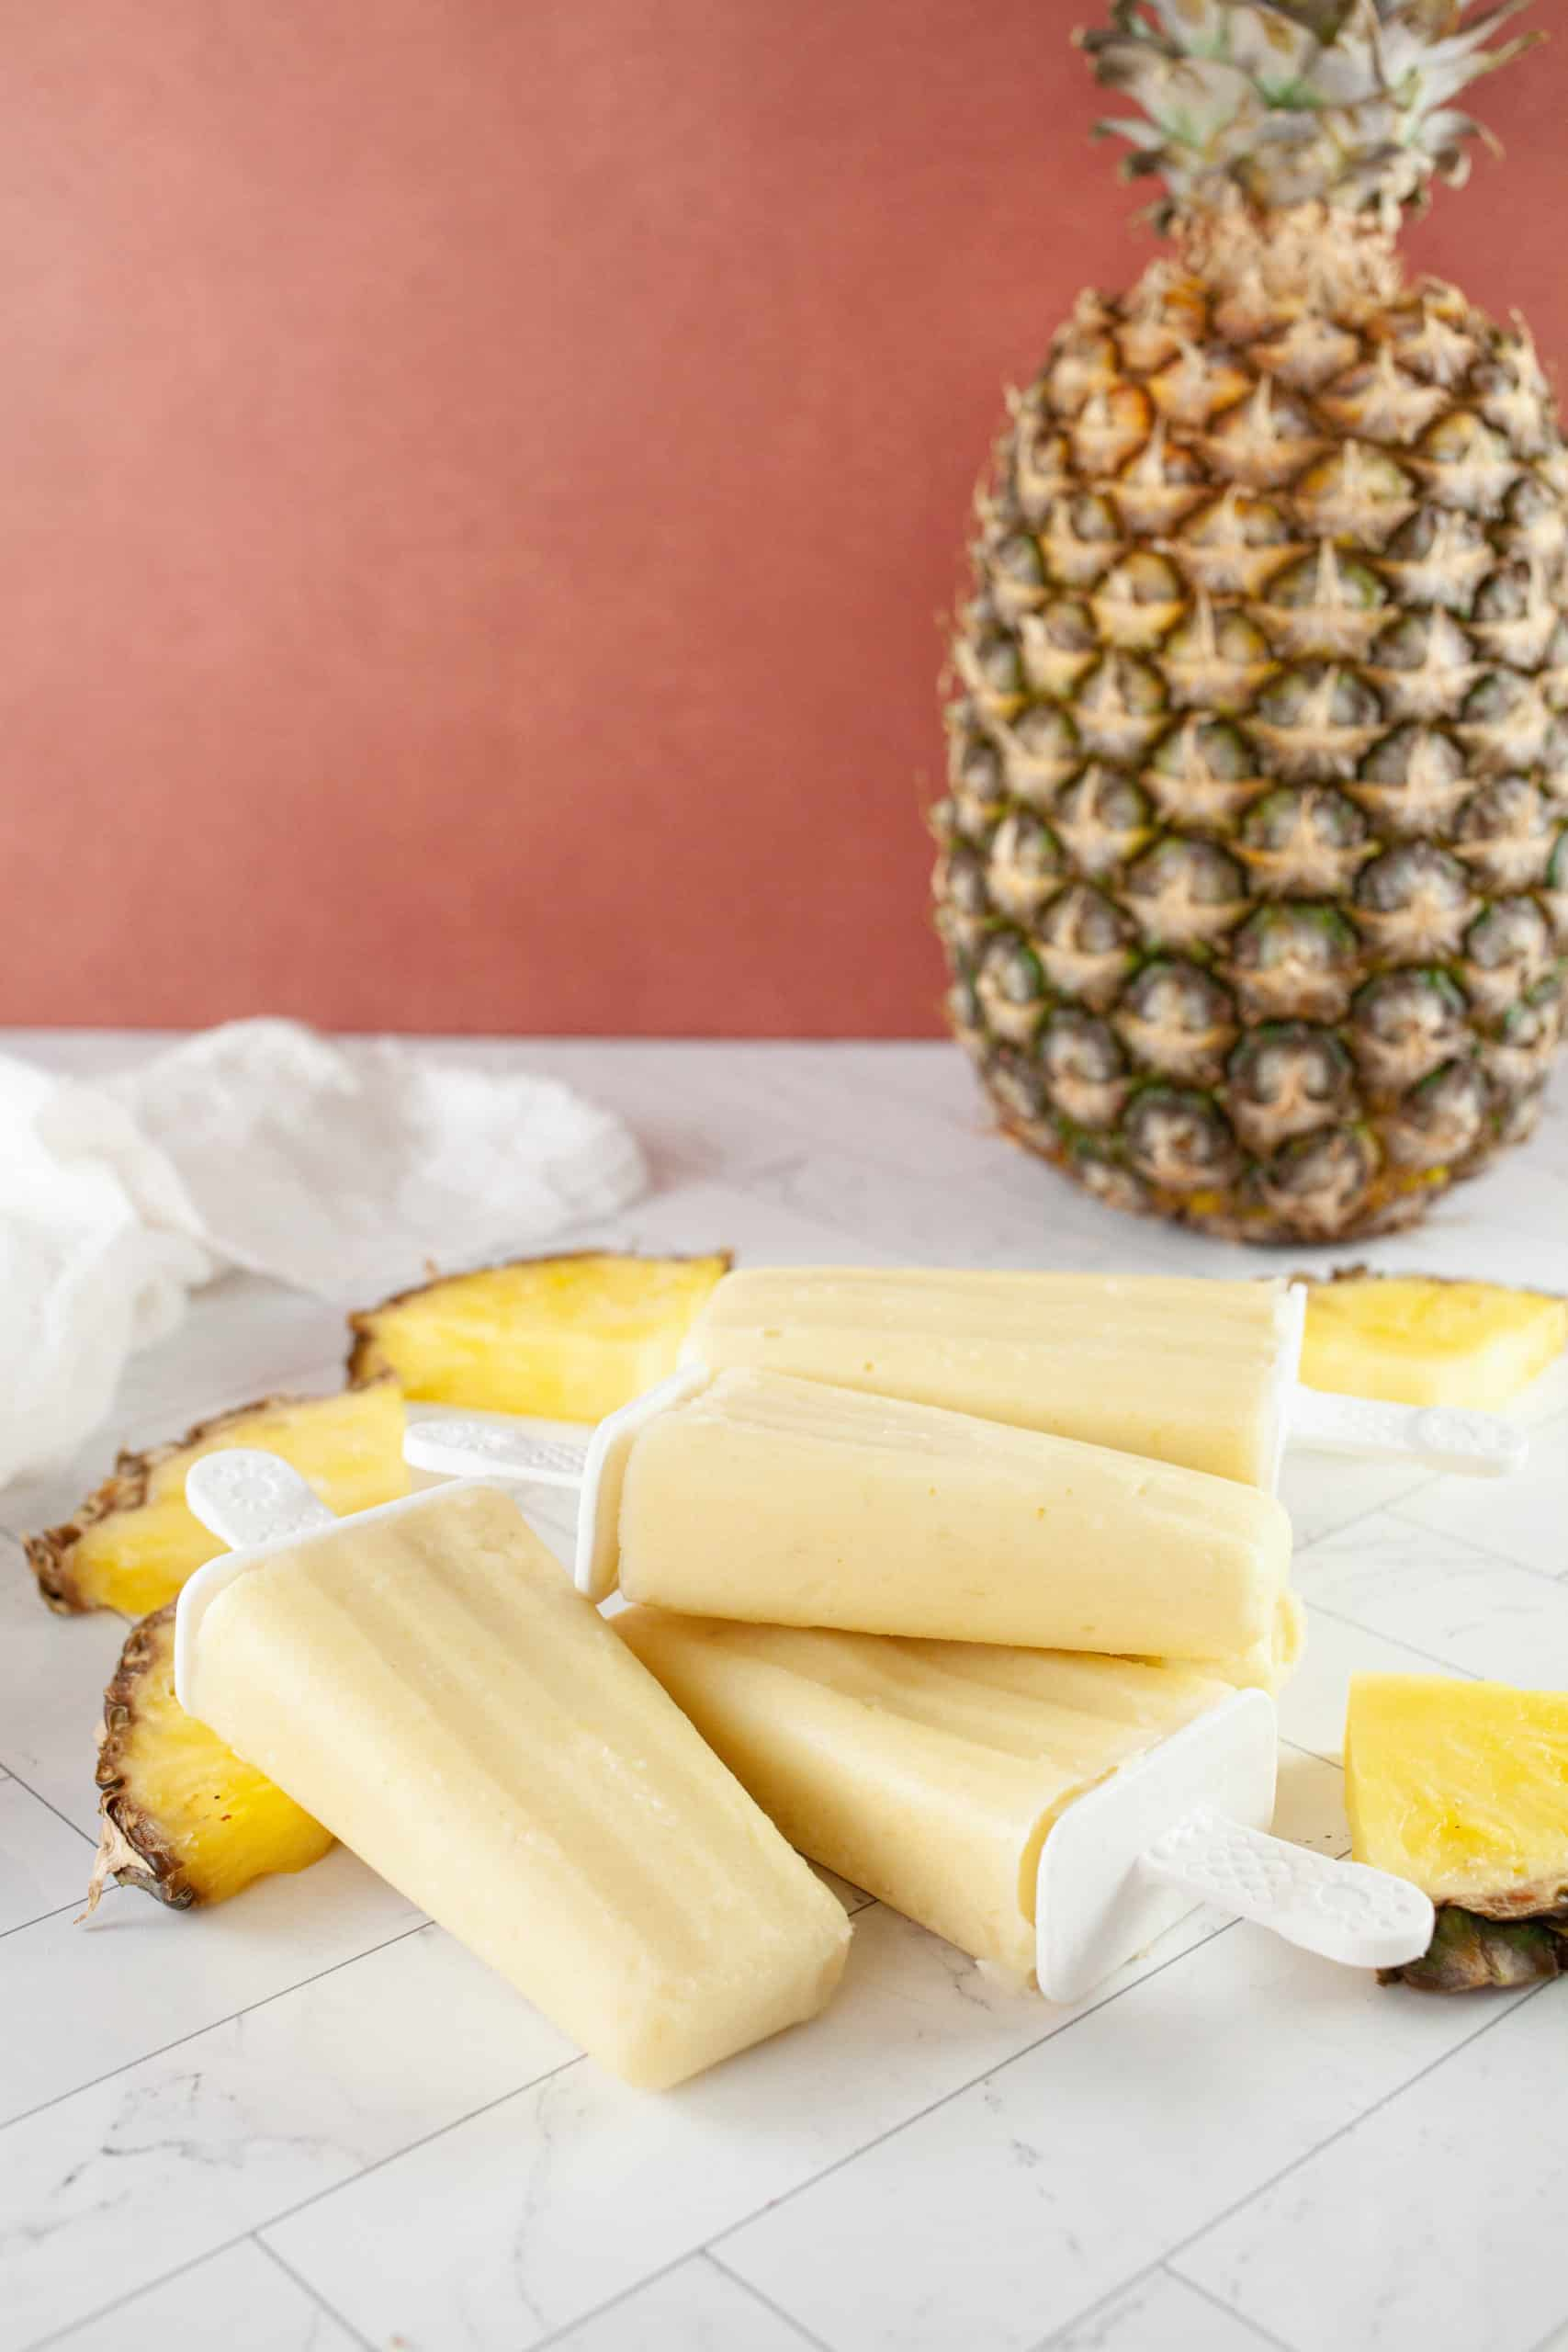 Pineapple on counter with pina colada pops and sliced pineapple.